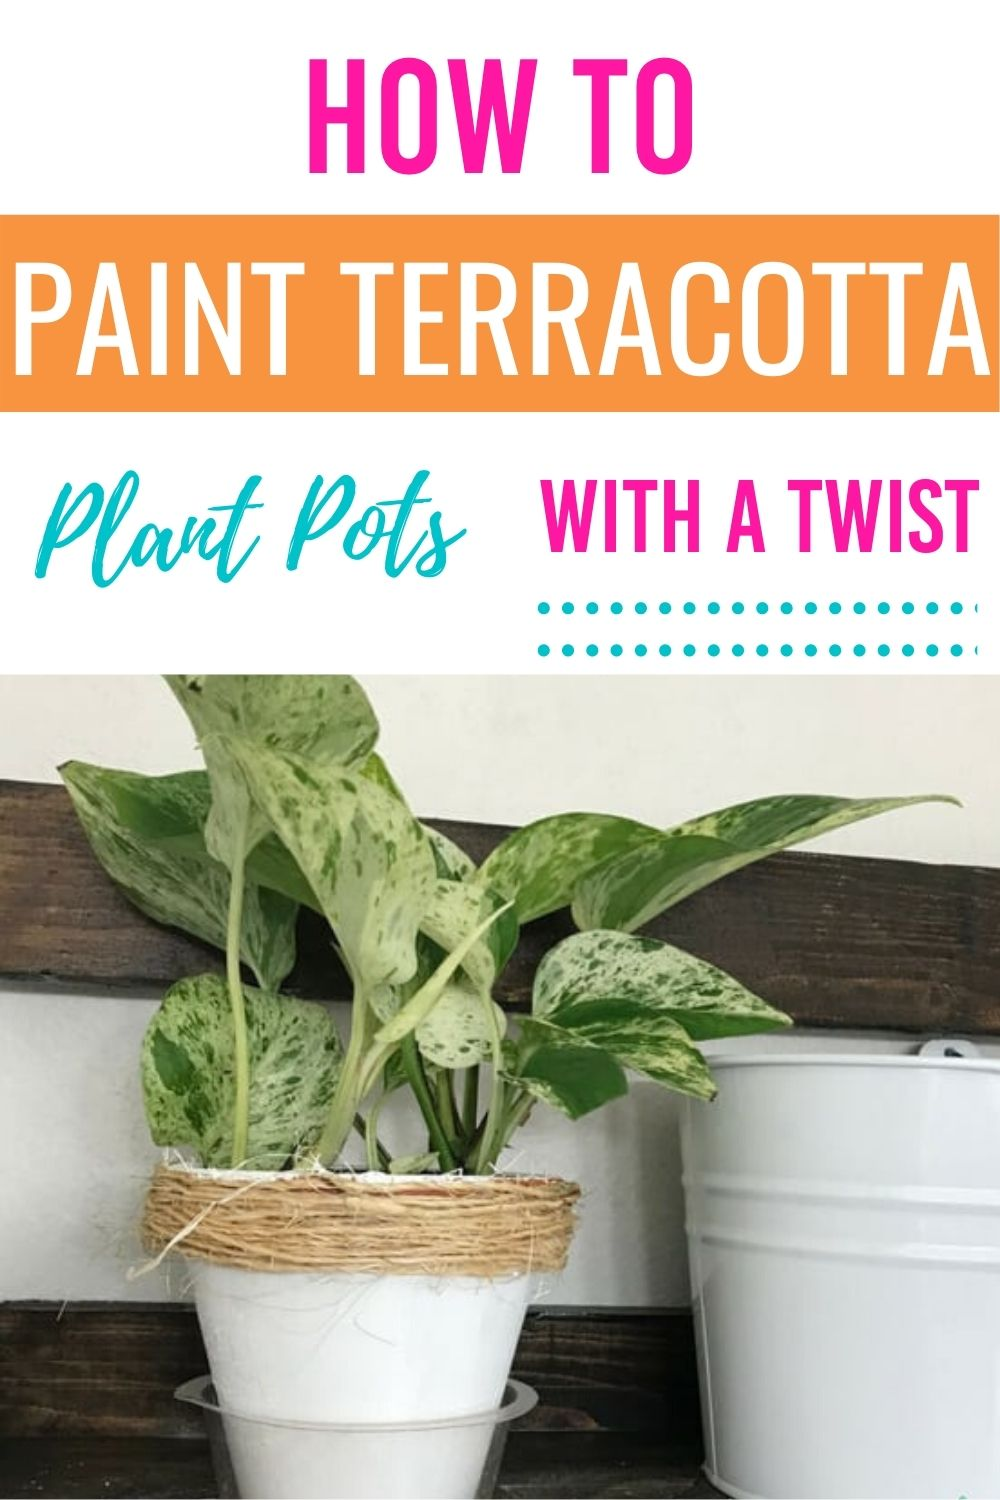 Update old terracotta pots with a few supplies at home and learn how to paint a terracotta pot. #DIY #crafts #terracotta #howtopaintterracottapots via @homebyjenn